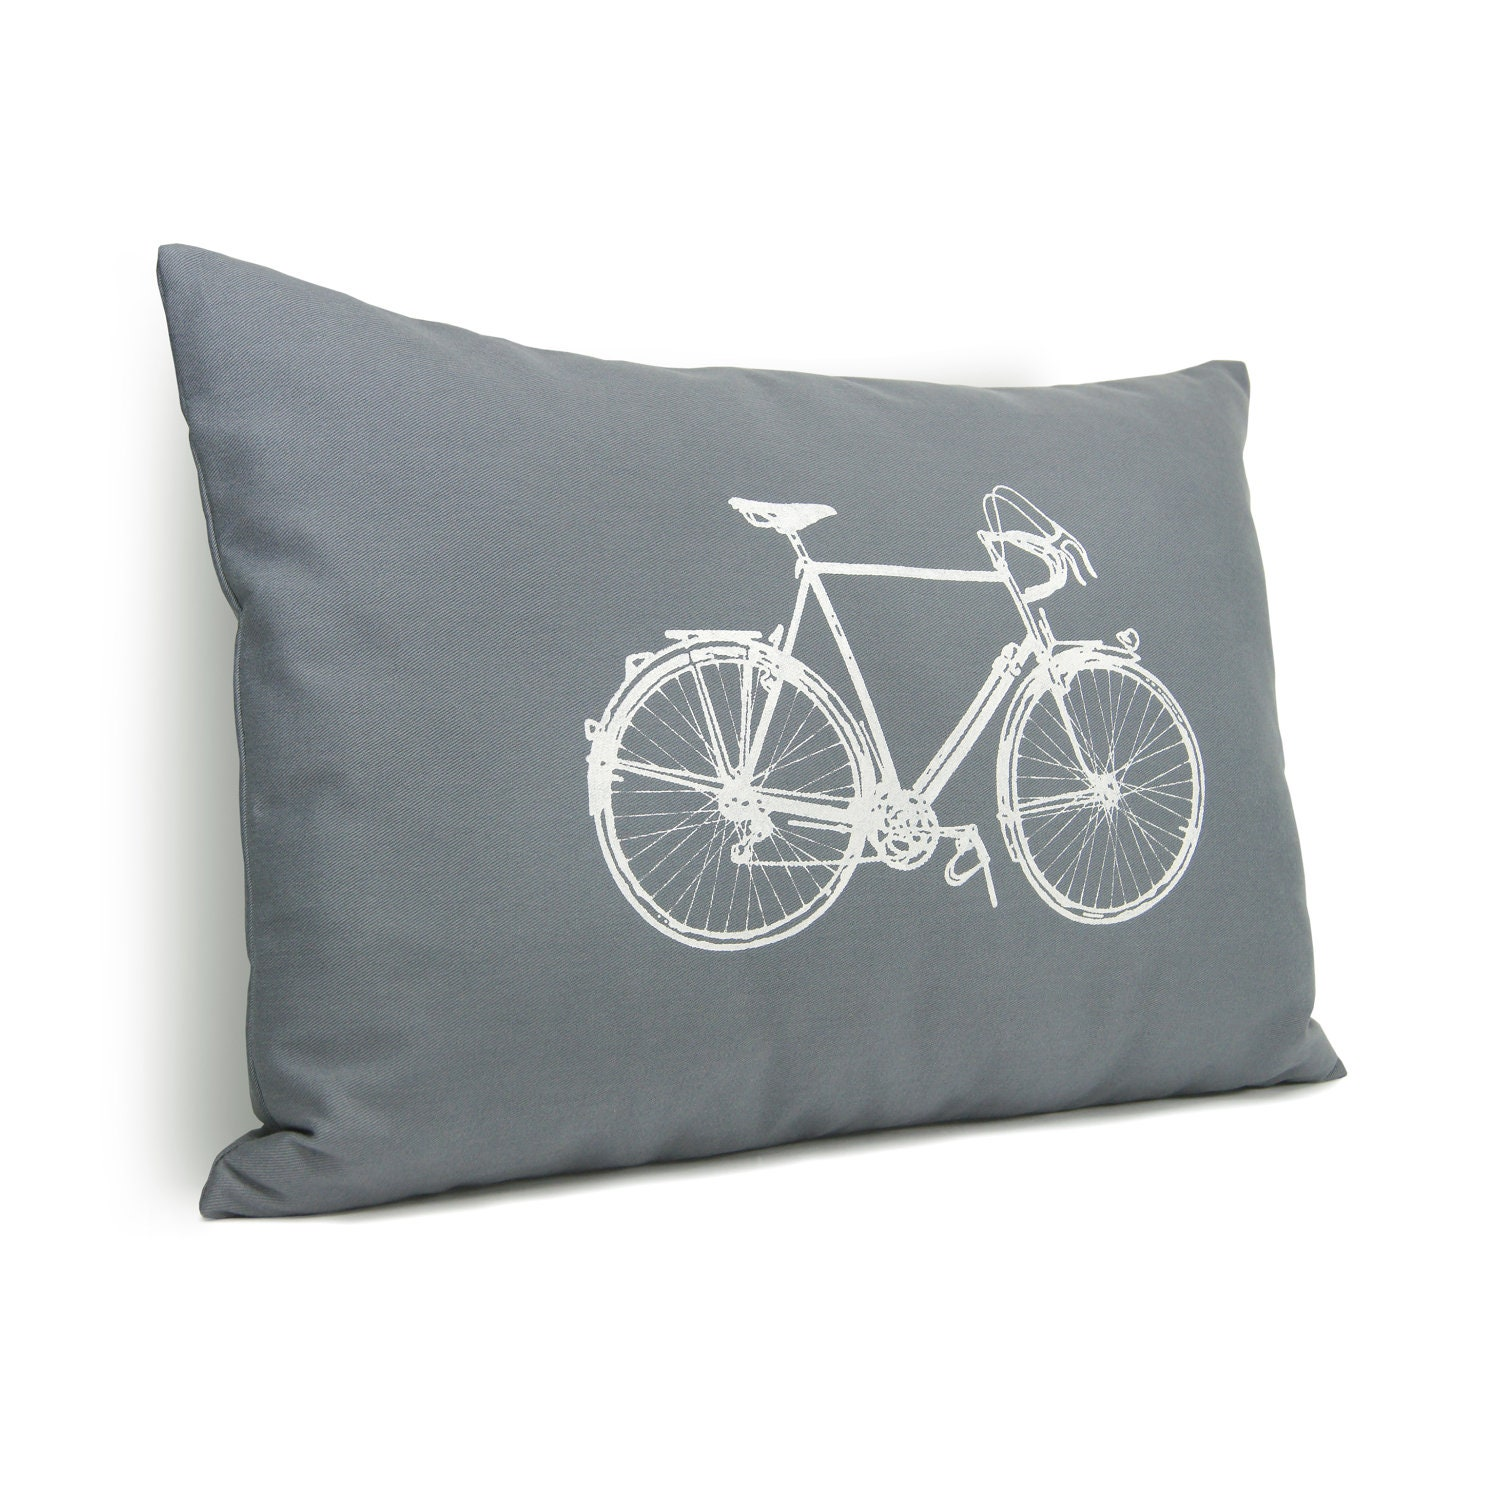 Gray and white decorative pillow cover - White vintage bicycle print on medium grey twill fabric - 12x16 lumbar pillow cover - ClassicByNature